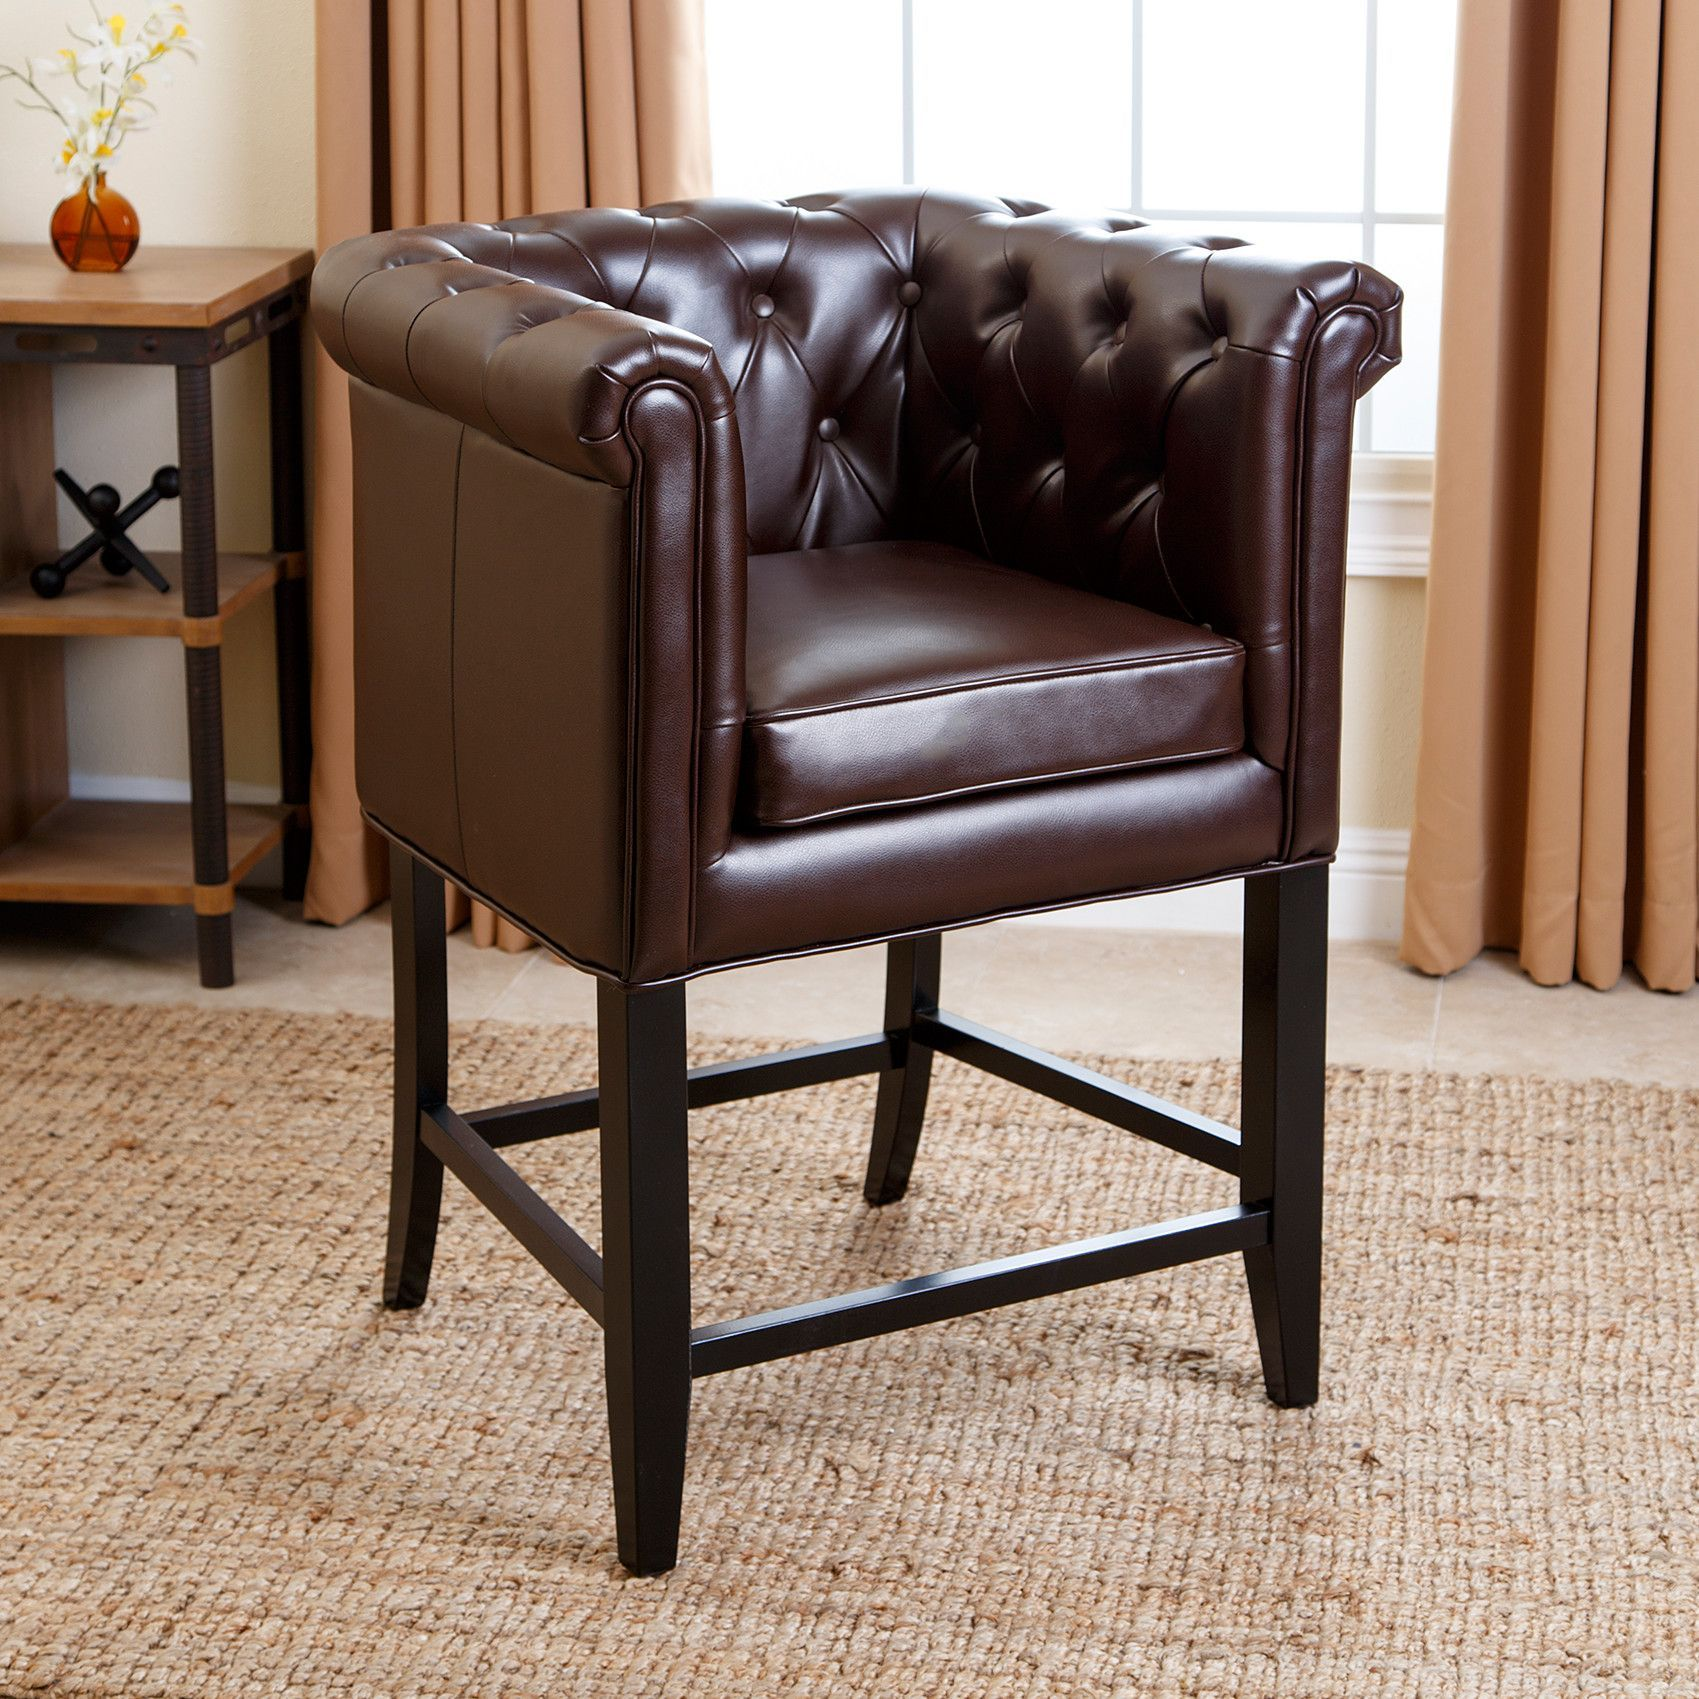 Chesterfield Bar Stool With Cushion